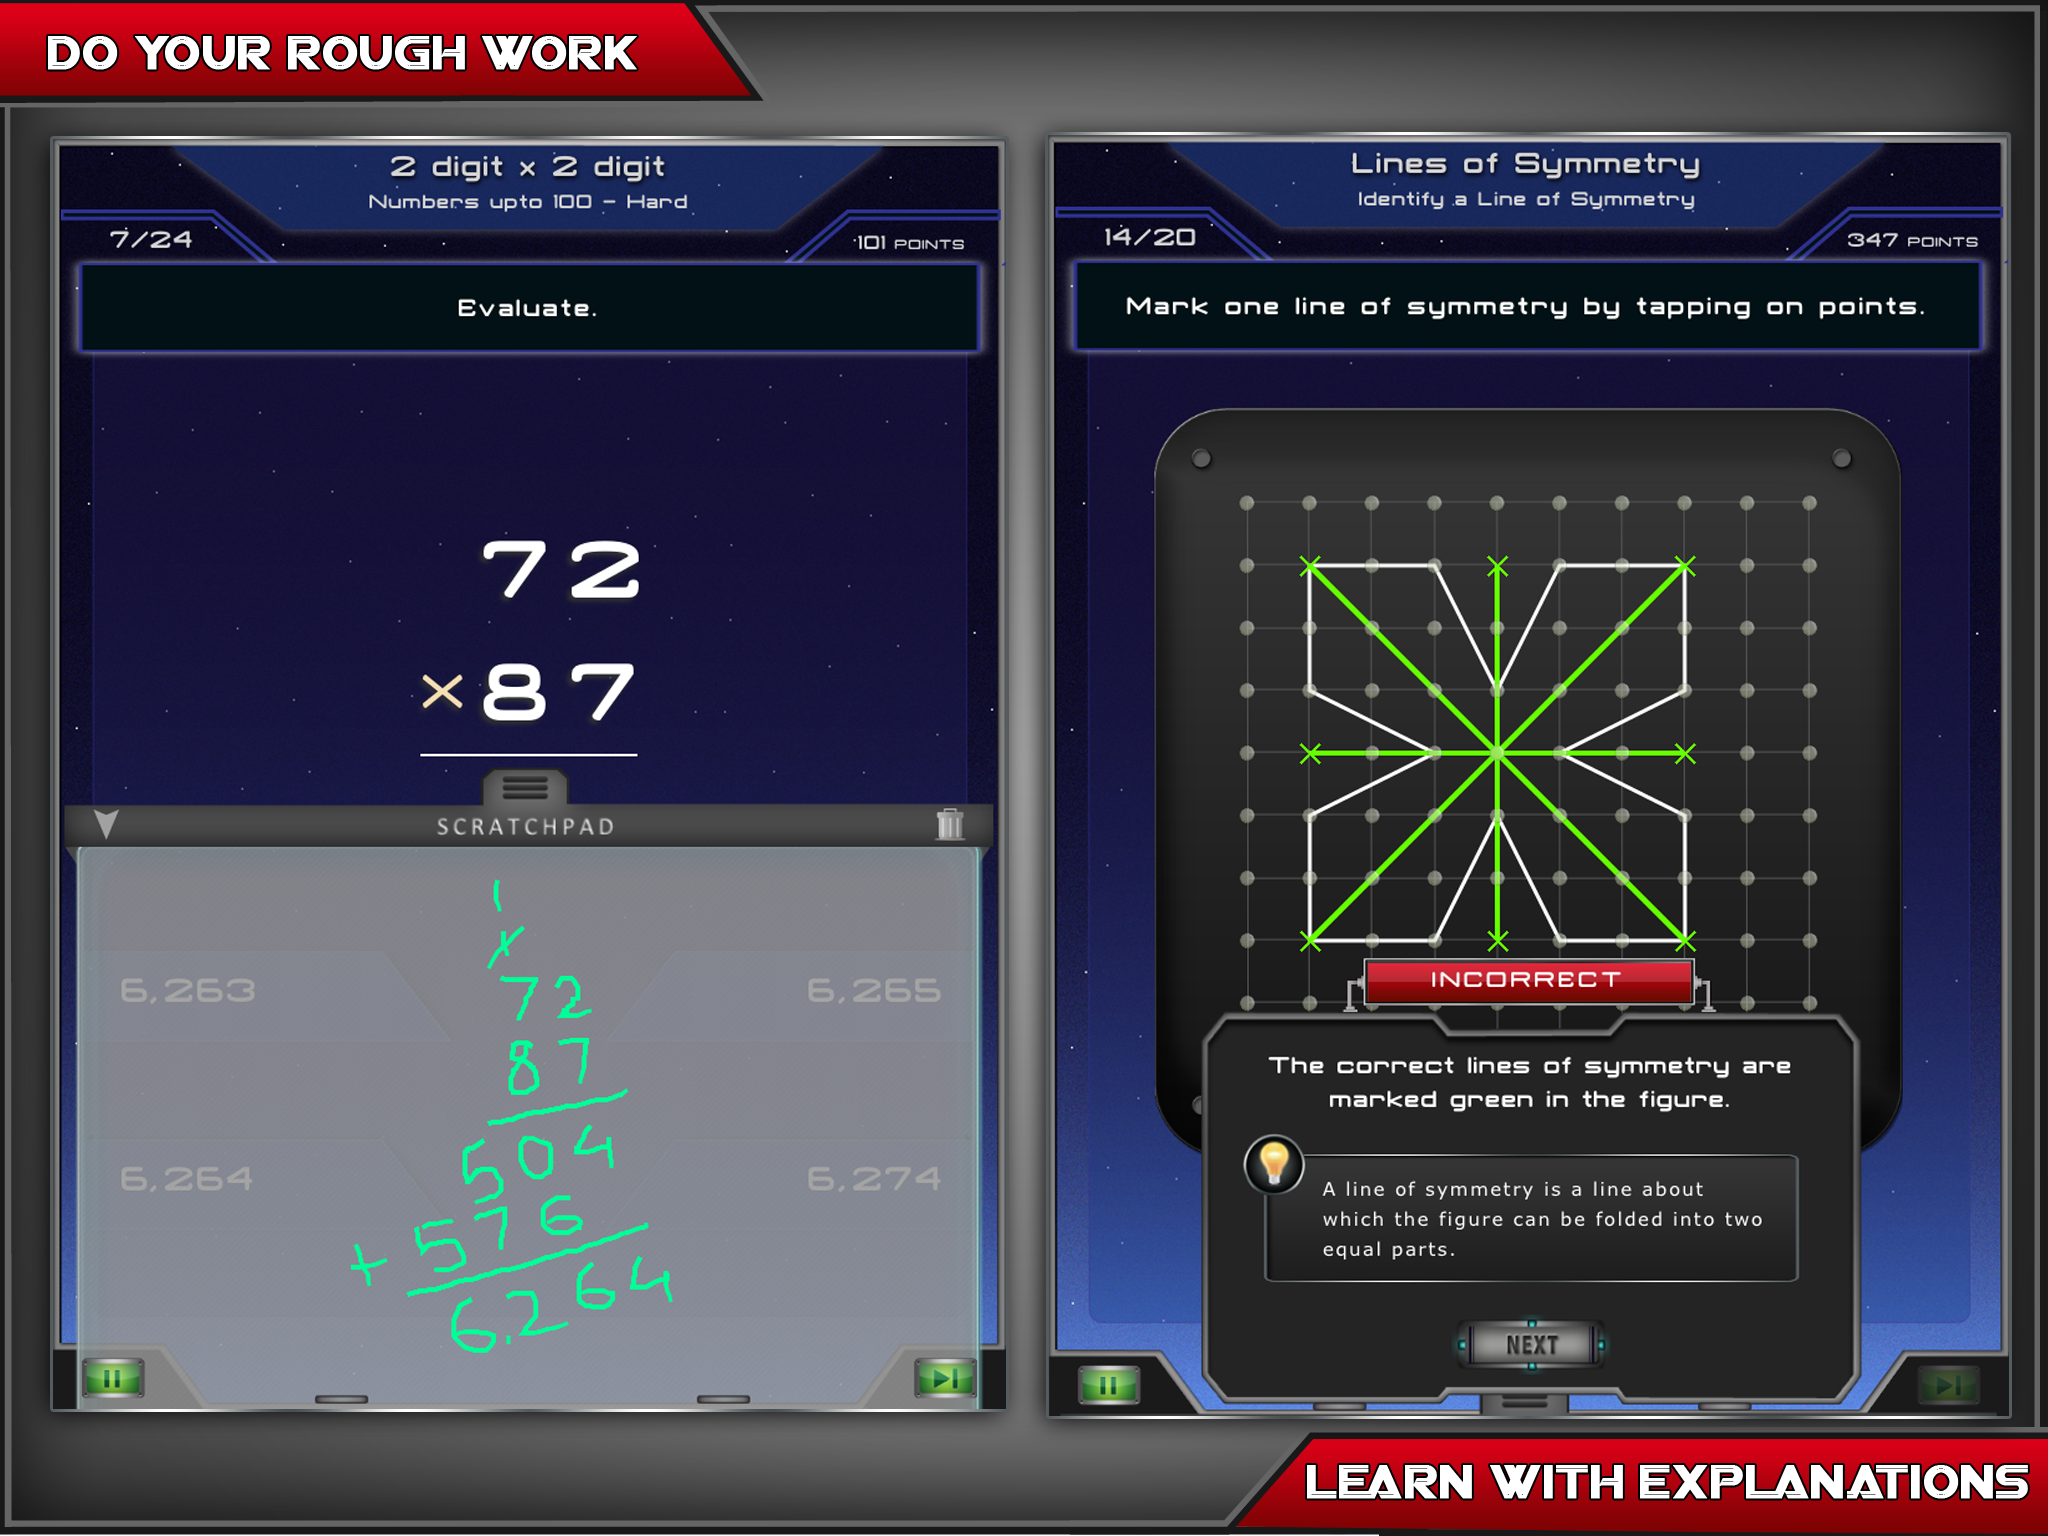 With 140 Adaptive Worksheets With Virtually Infinite Problems Spanning Across 10 Chapters